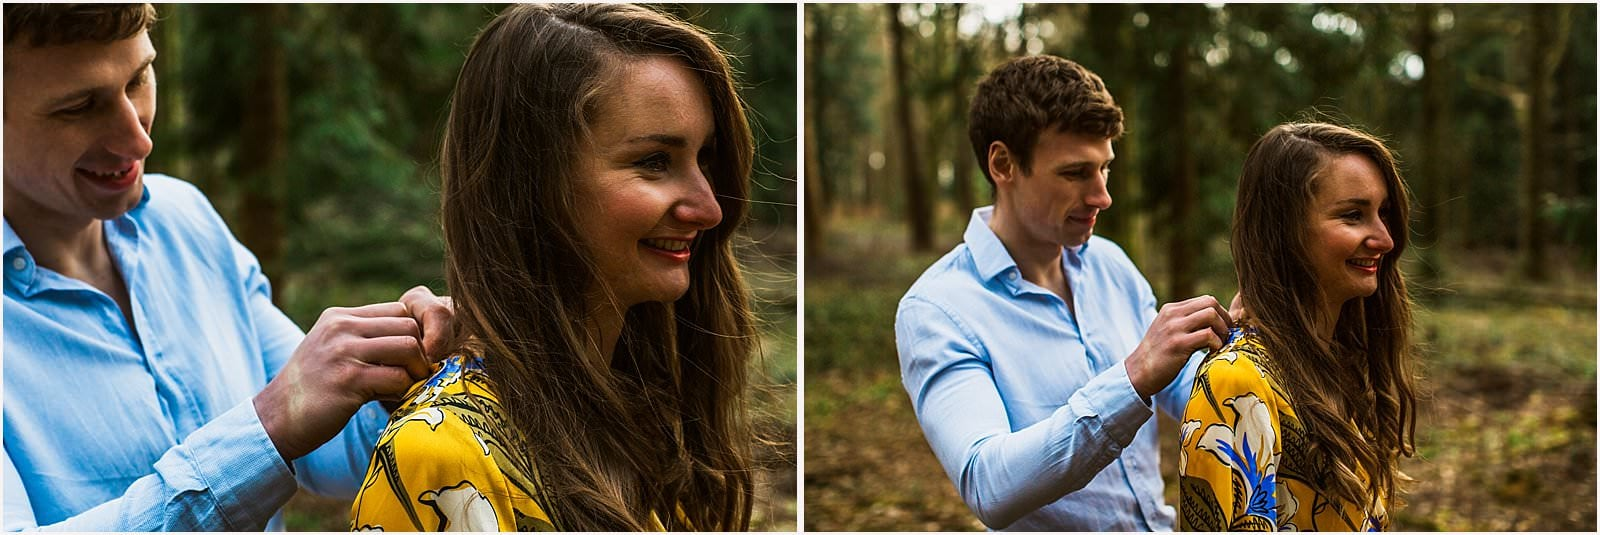 Hampshire Engagement Photography, Andover - C & L 11